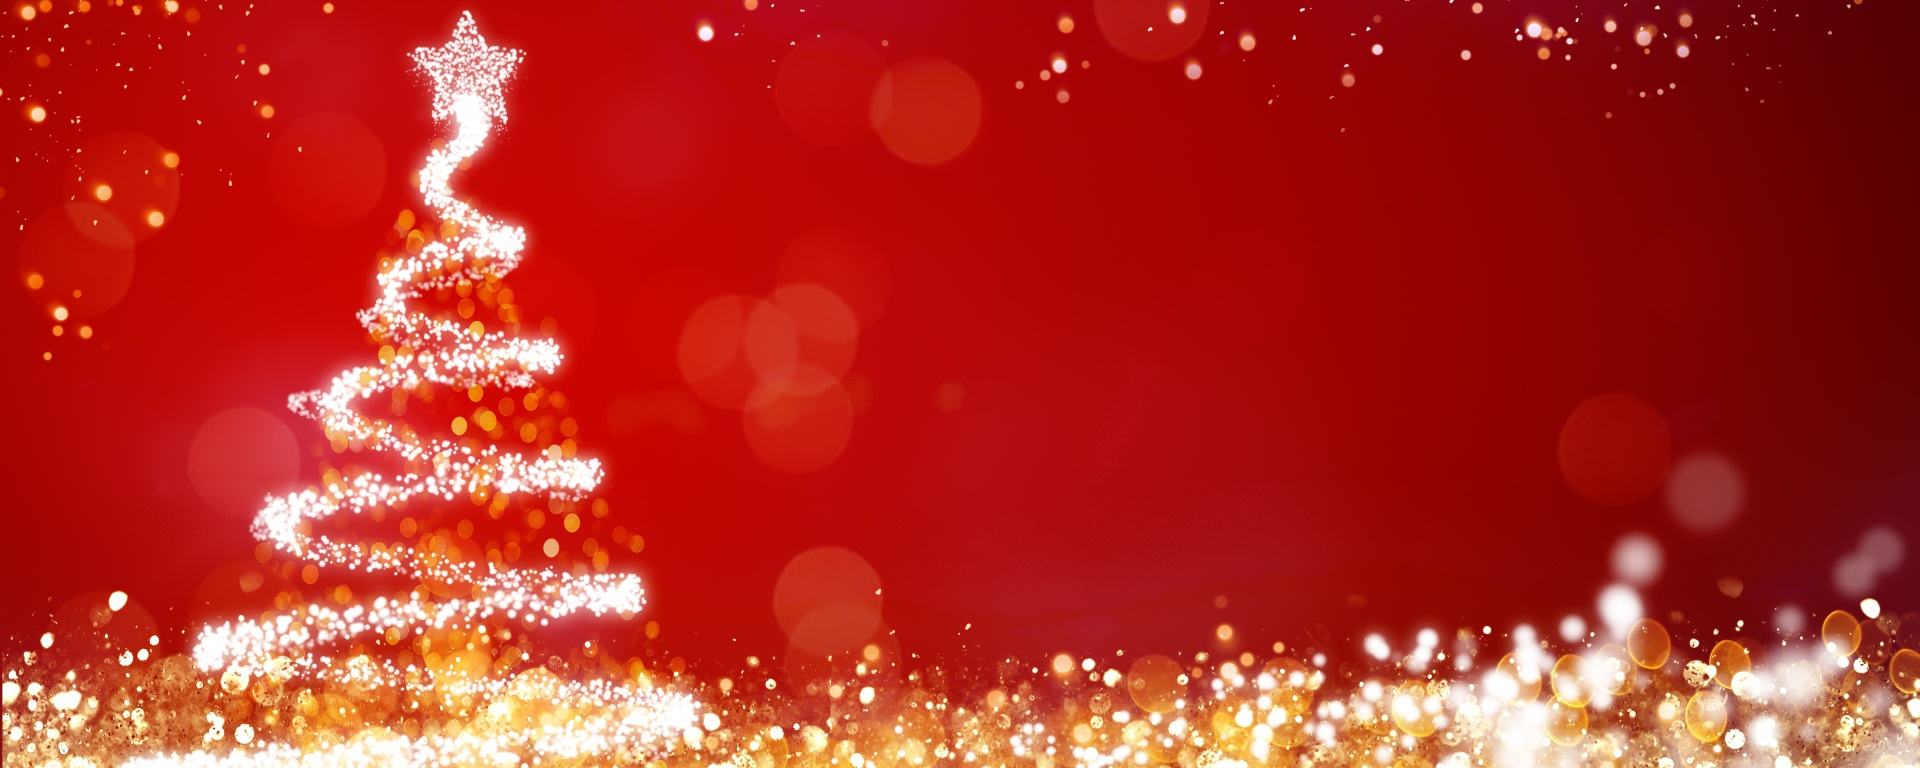 Golden and silver lights with Christmas tree on red background.